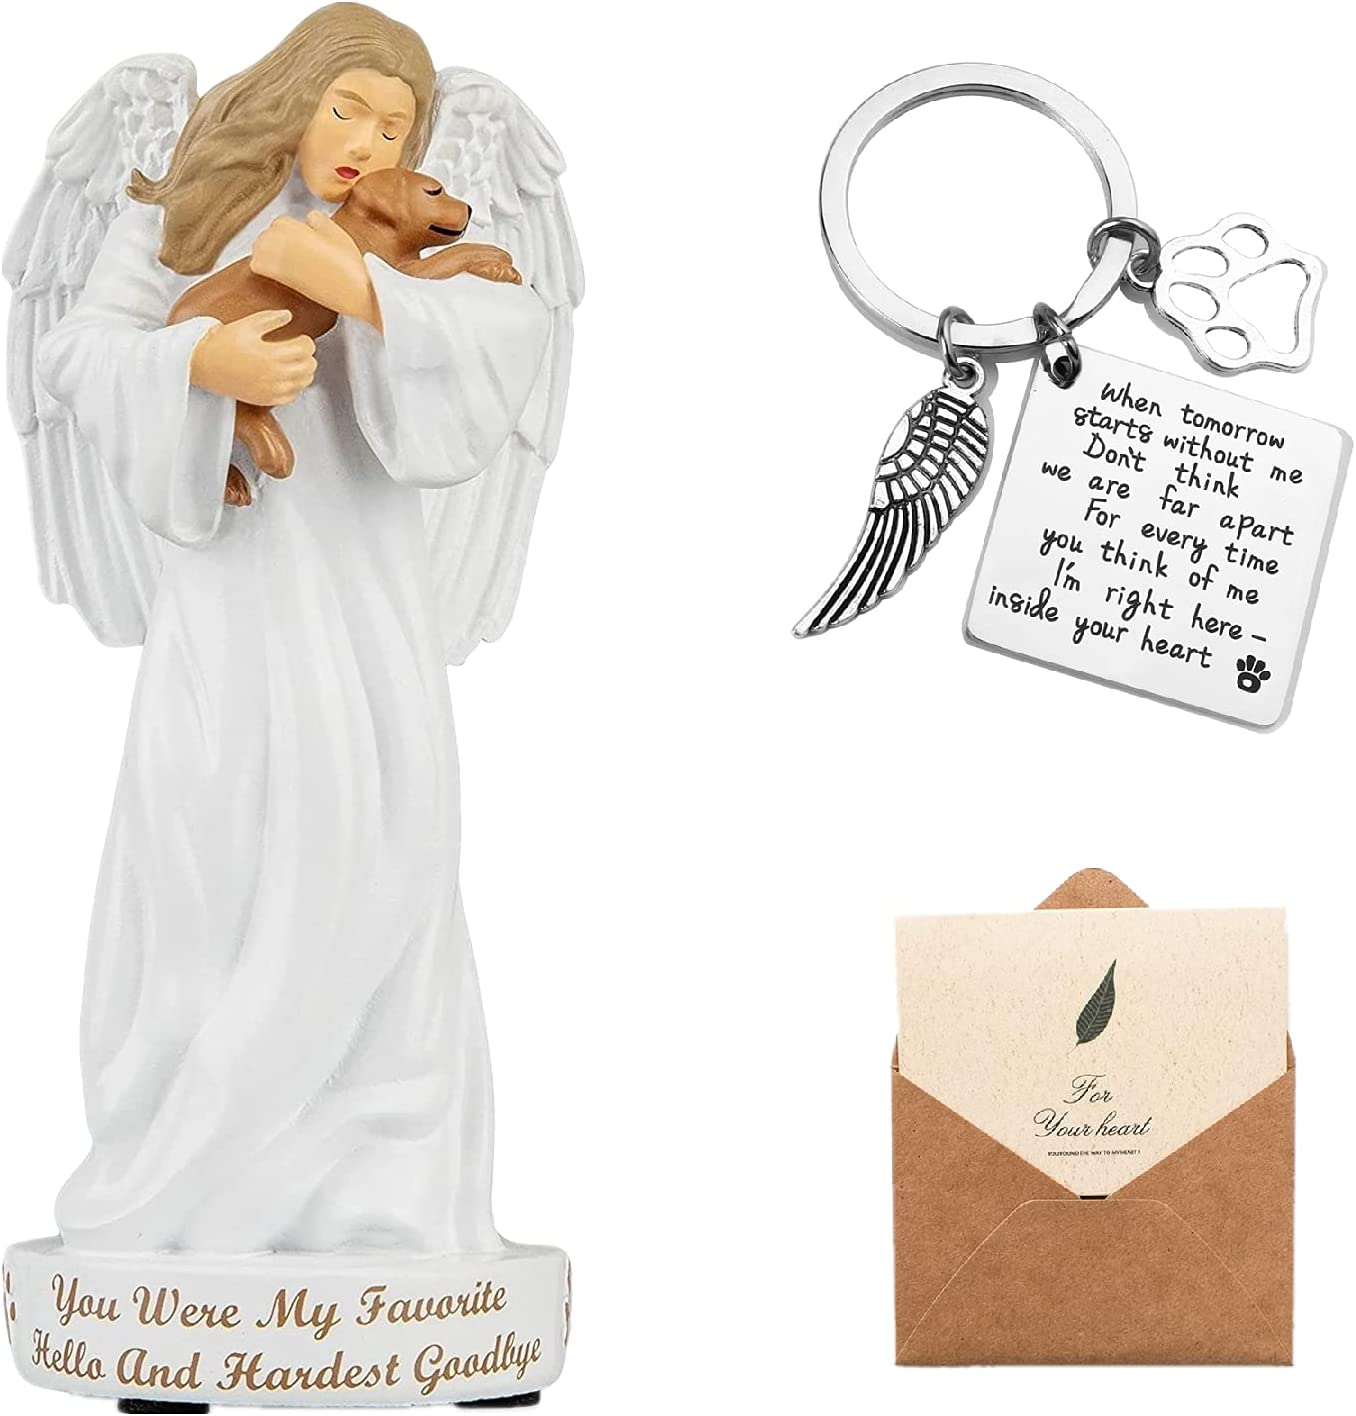 NovoMoss Dog Memorial Gifts - Dog's Angle Figurine Statue with Remembrance Keychain and Enclosure Card - Sympathy Gift Ideas for Loss of Dog Decor